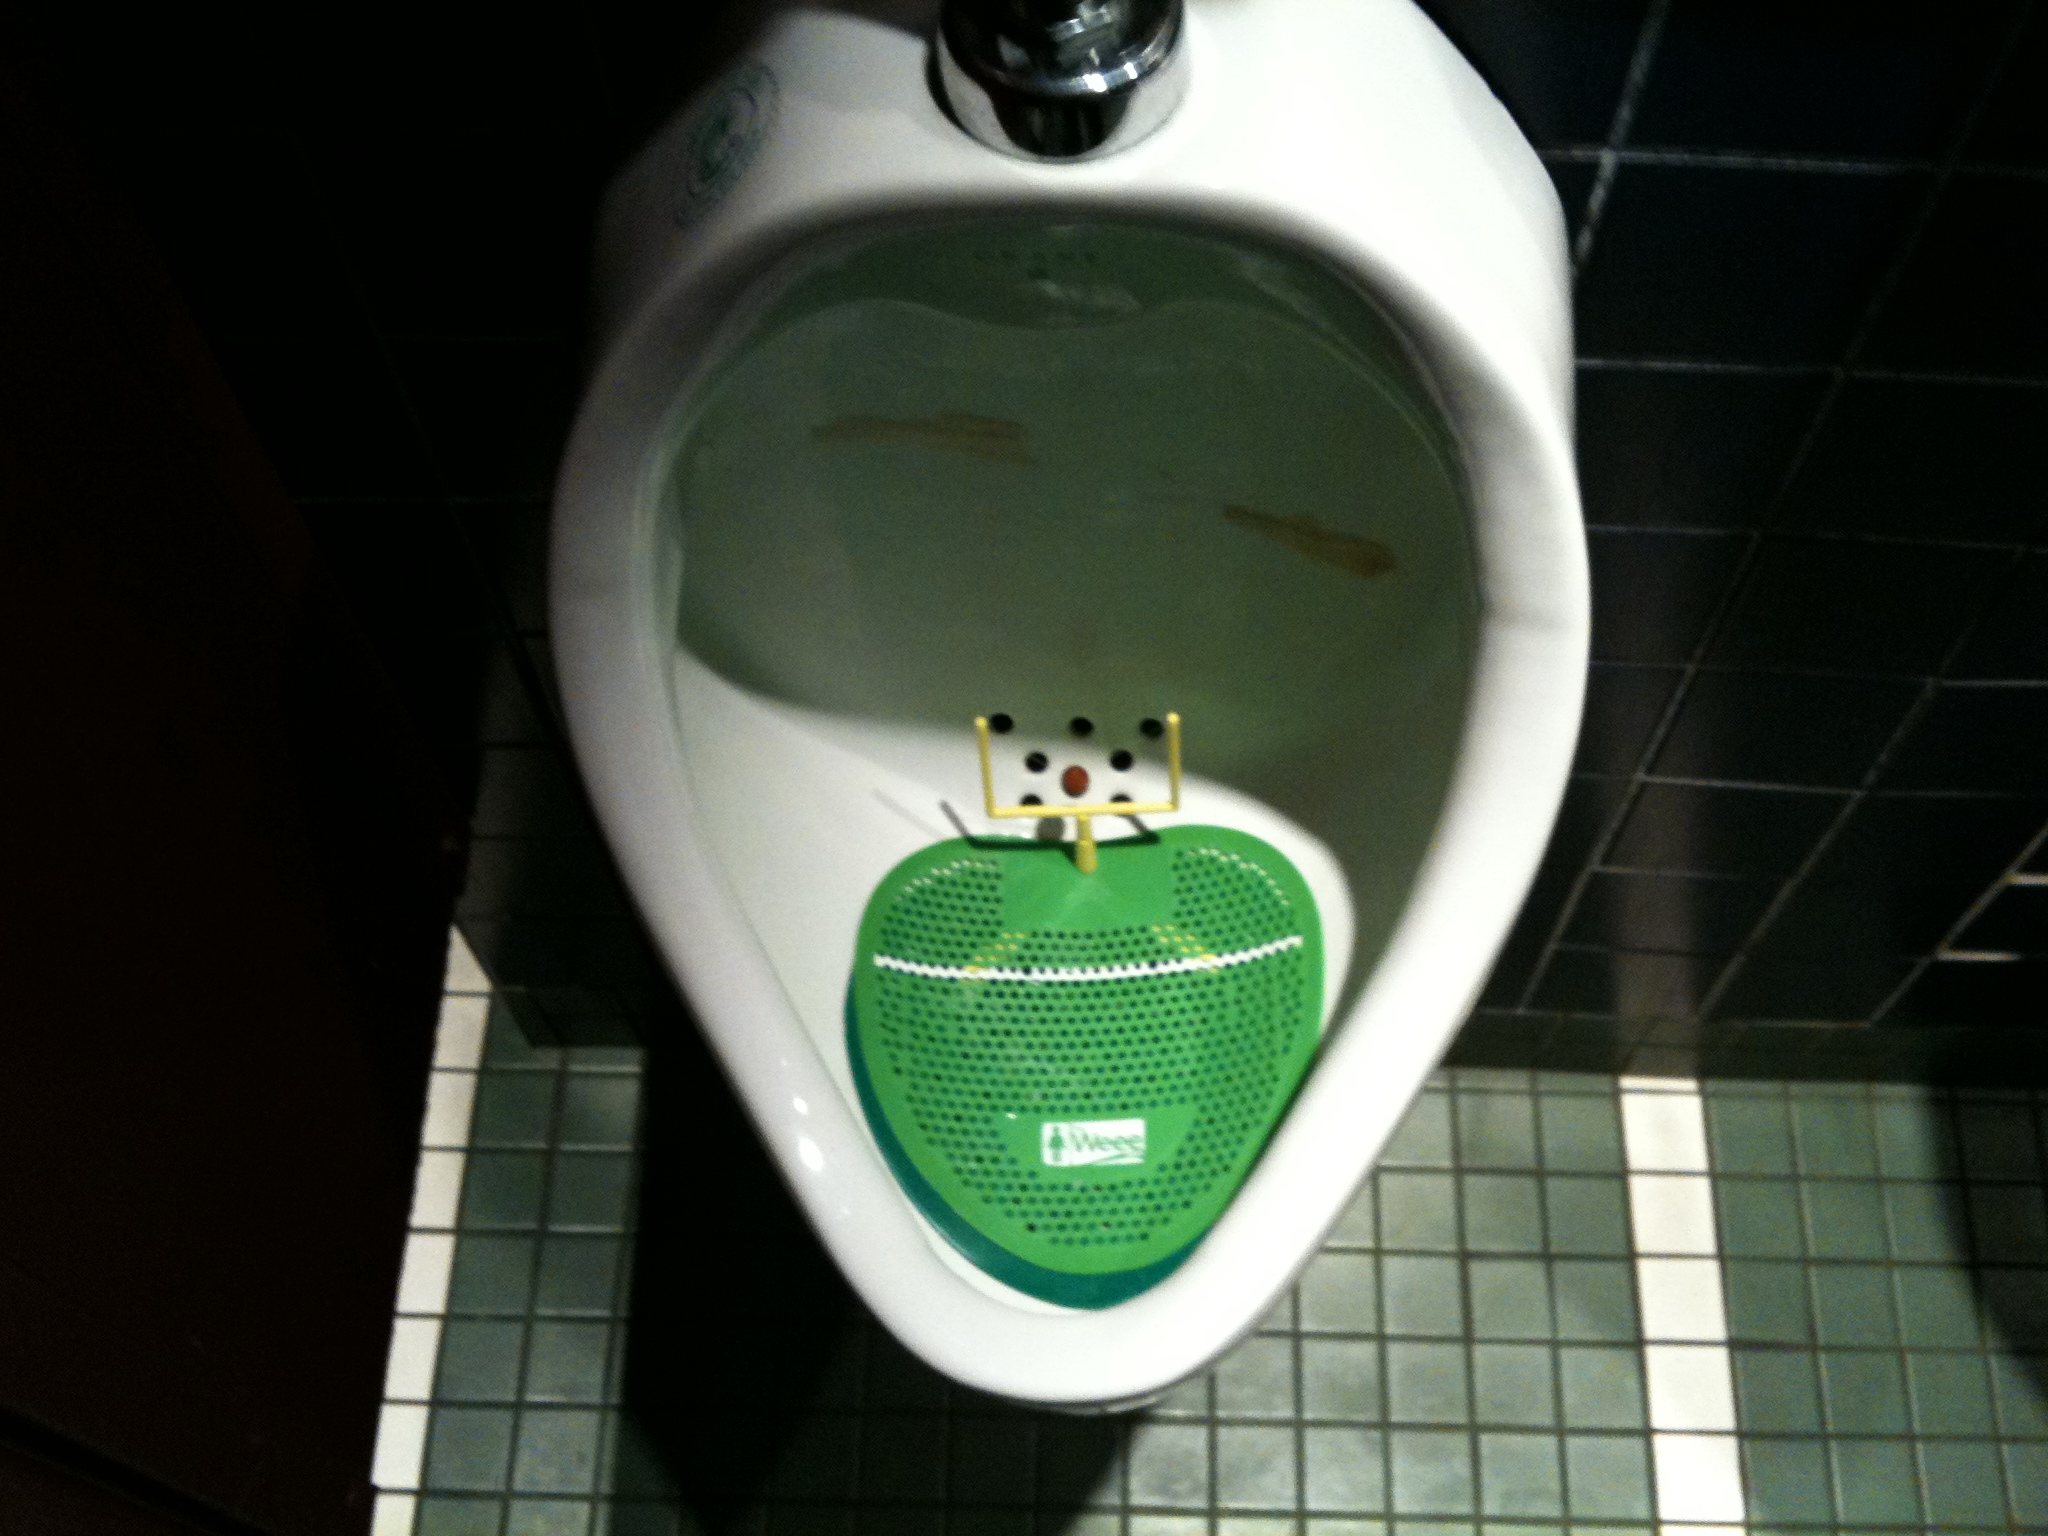 cage-aux-sports-urinal